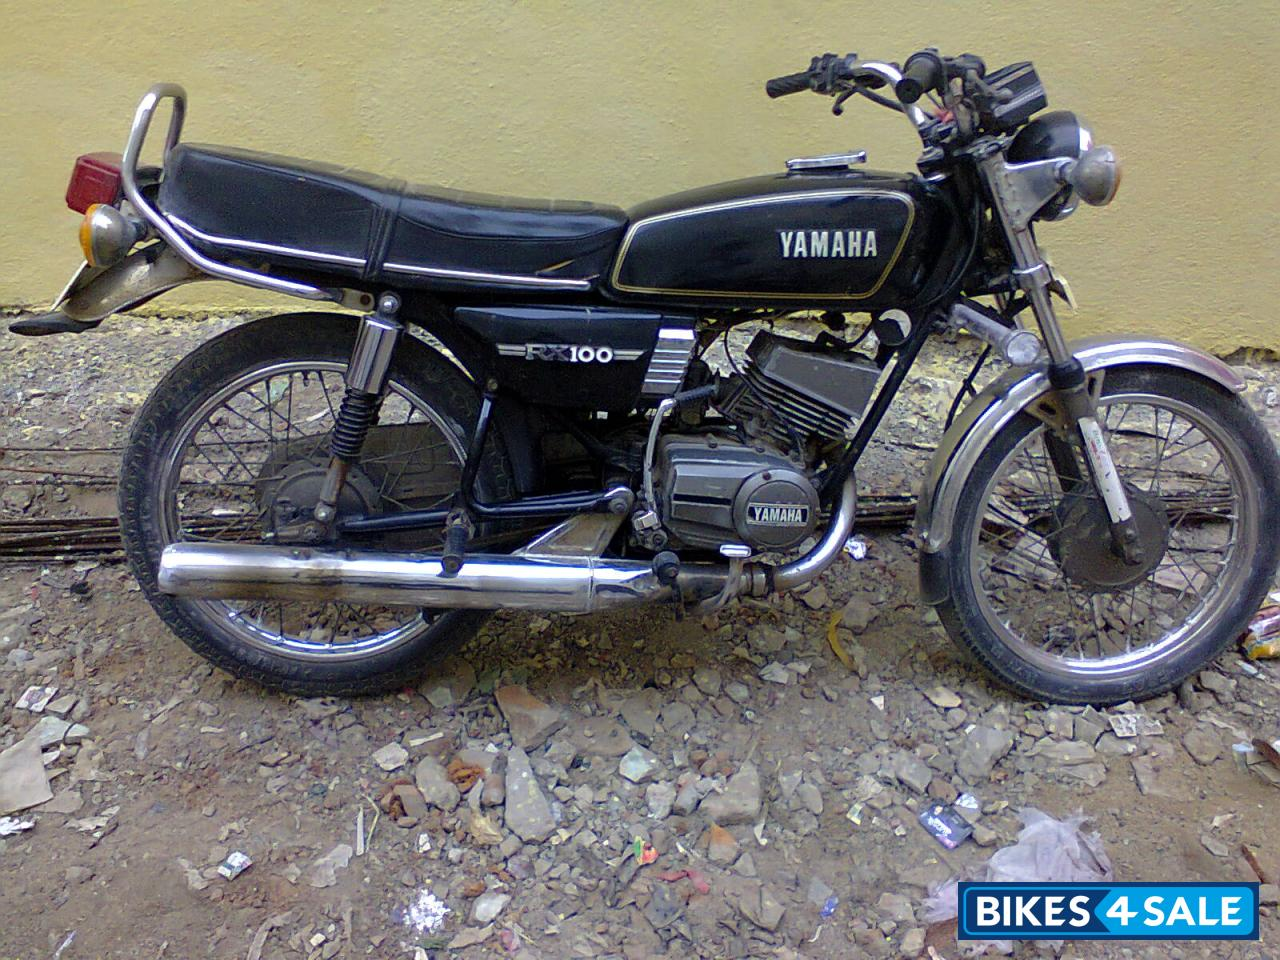 Black yamaha rx 100 picture 1 album id is 83406 bike for Yamaha rx115 motorcycle for sale